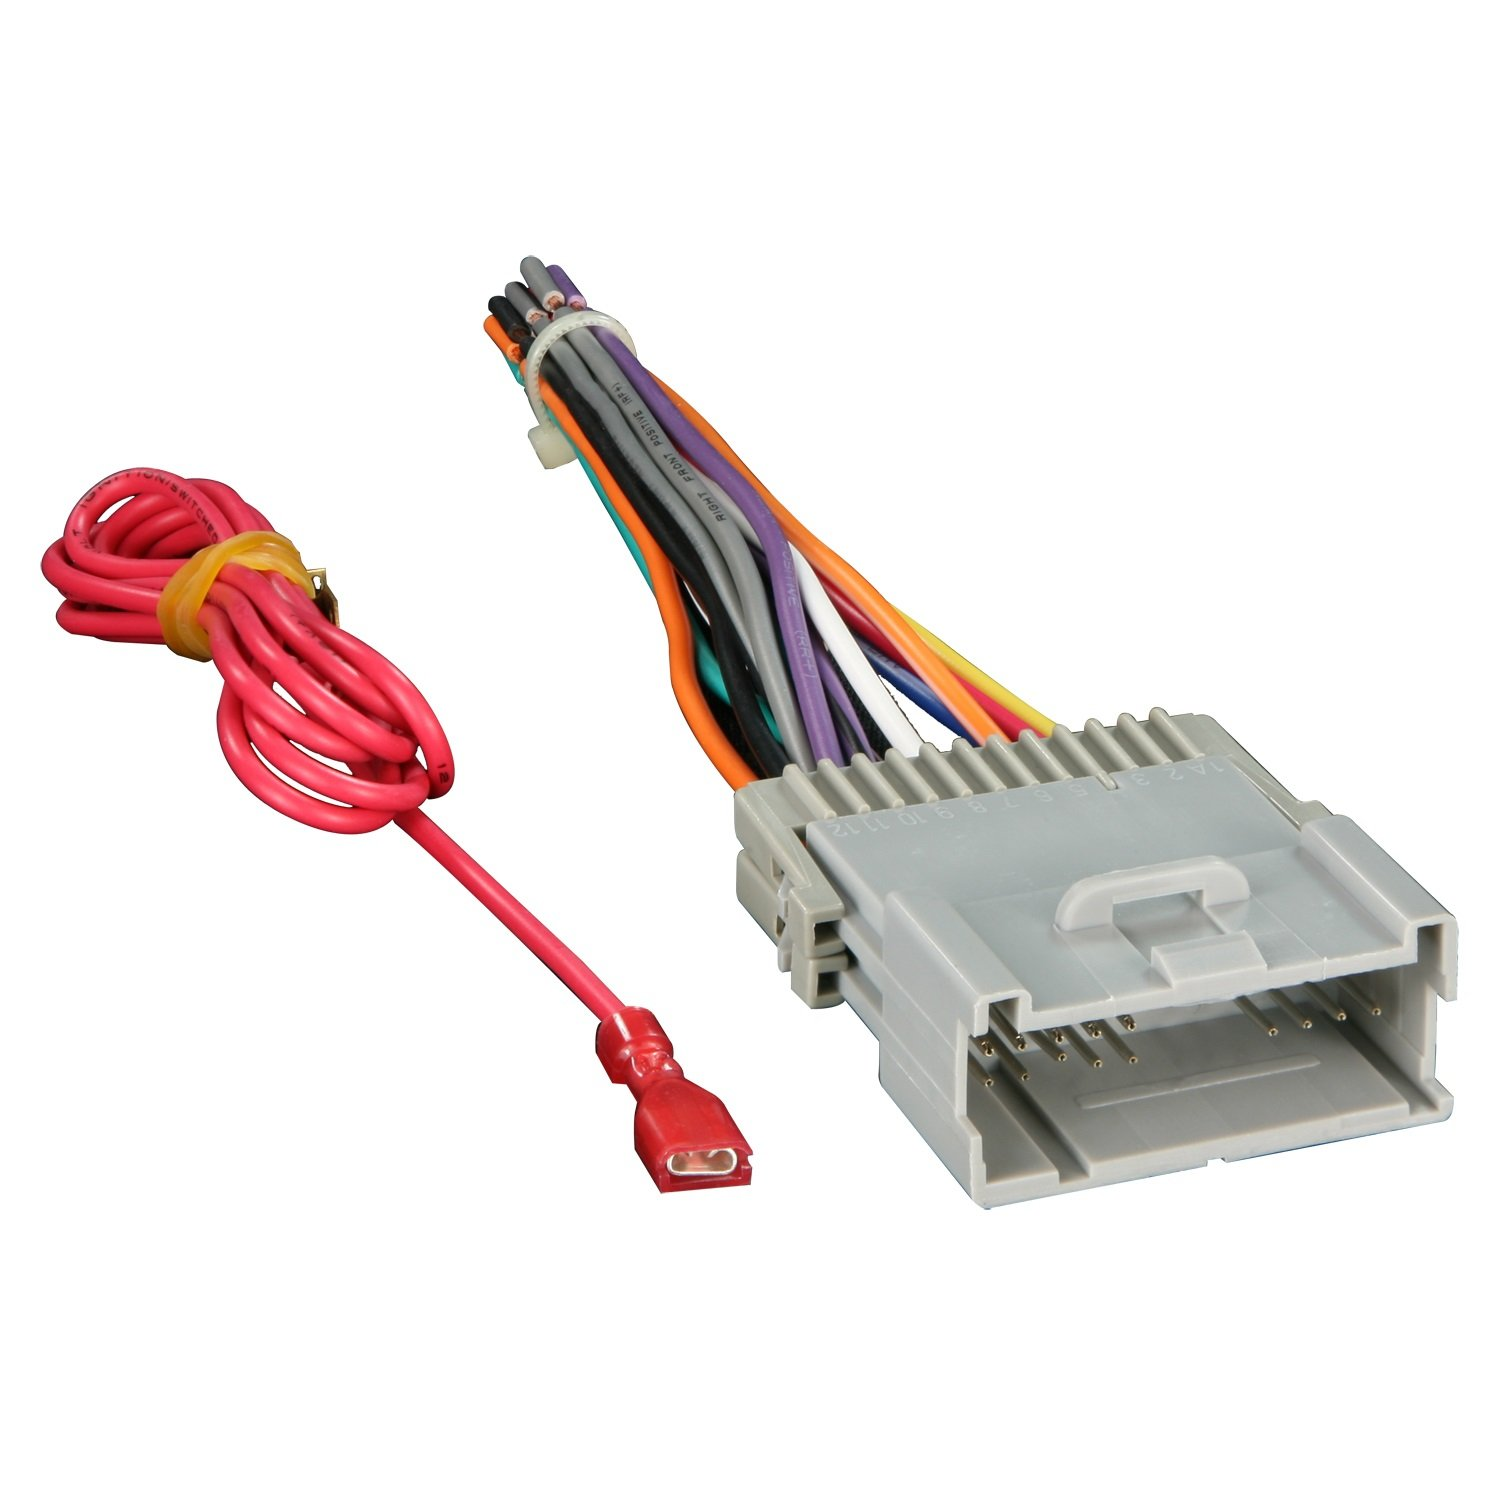 61eewxp9orL._SL1500_ amazon com metra 70 2003 radio wiring harness for gm 98 08 how to install wire harness car stereo at n-0.co